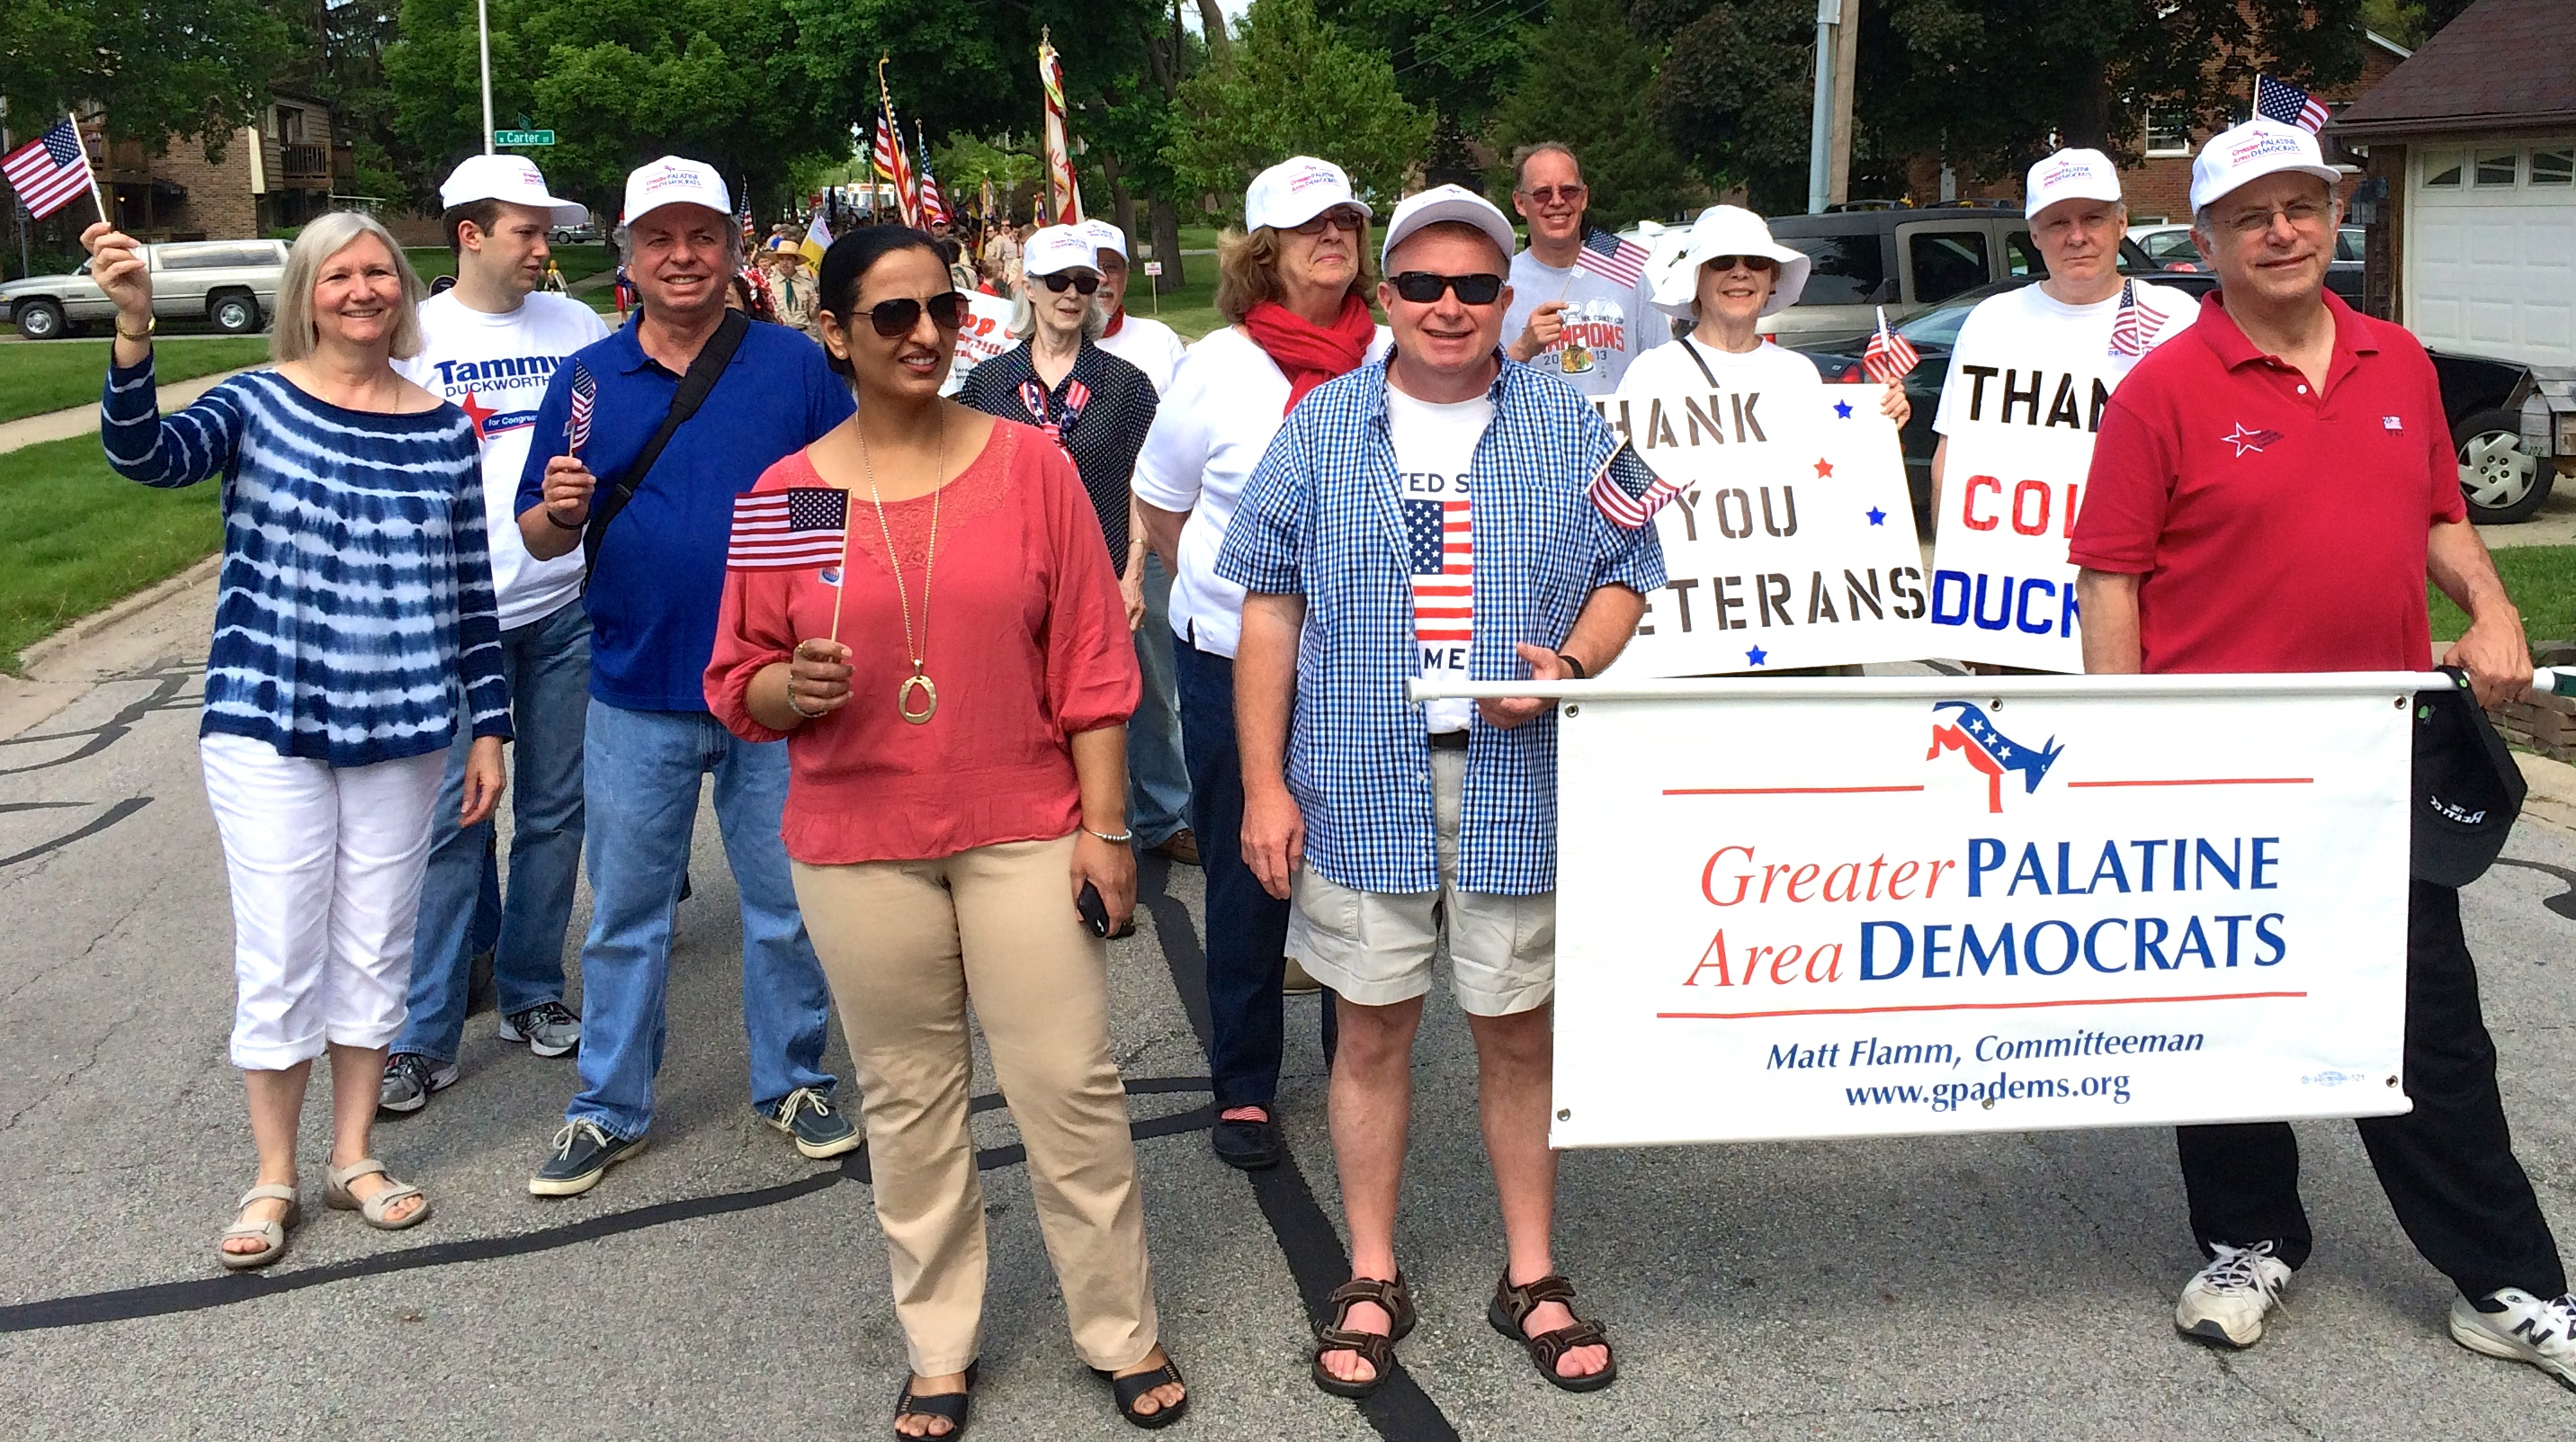 Palatine area Democrats march in Palatine's Memorial Day parade